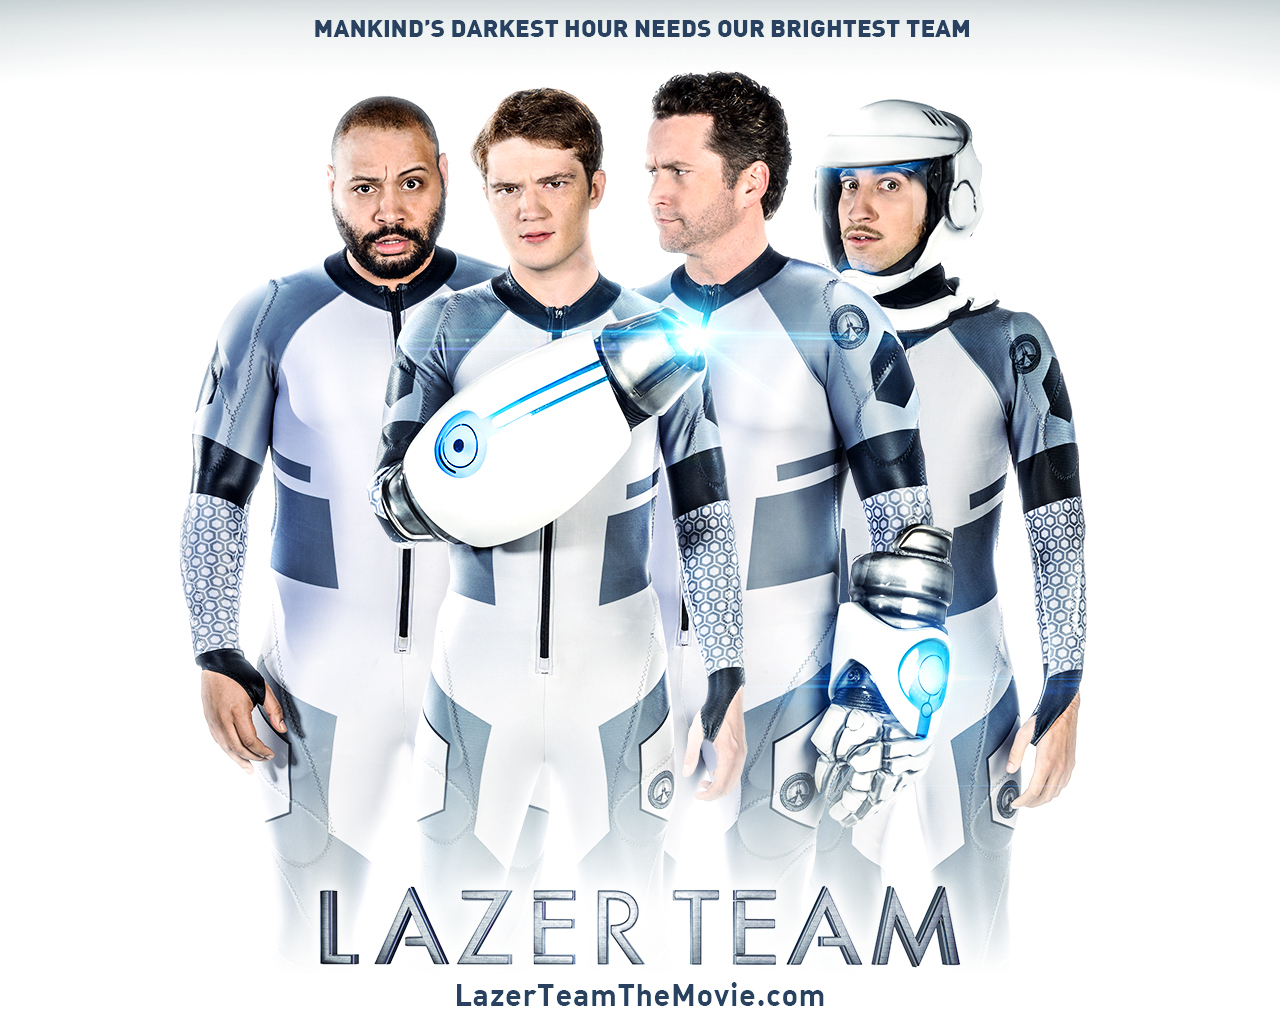 Lazer Team - The Rooster Teeth community successfully crowd-funded our first movie Lazer Team. With them, we hit our goal within 10 hours and raised $2.48 million by the end of the campaign.